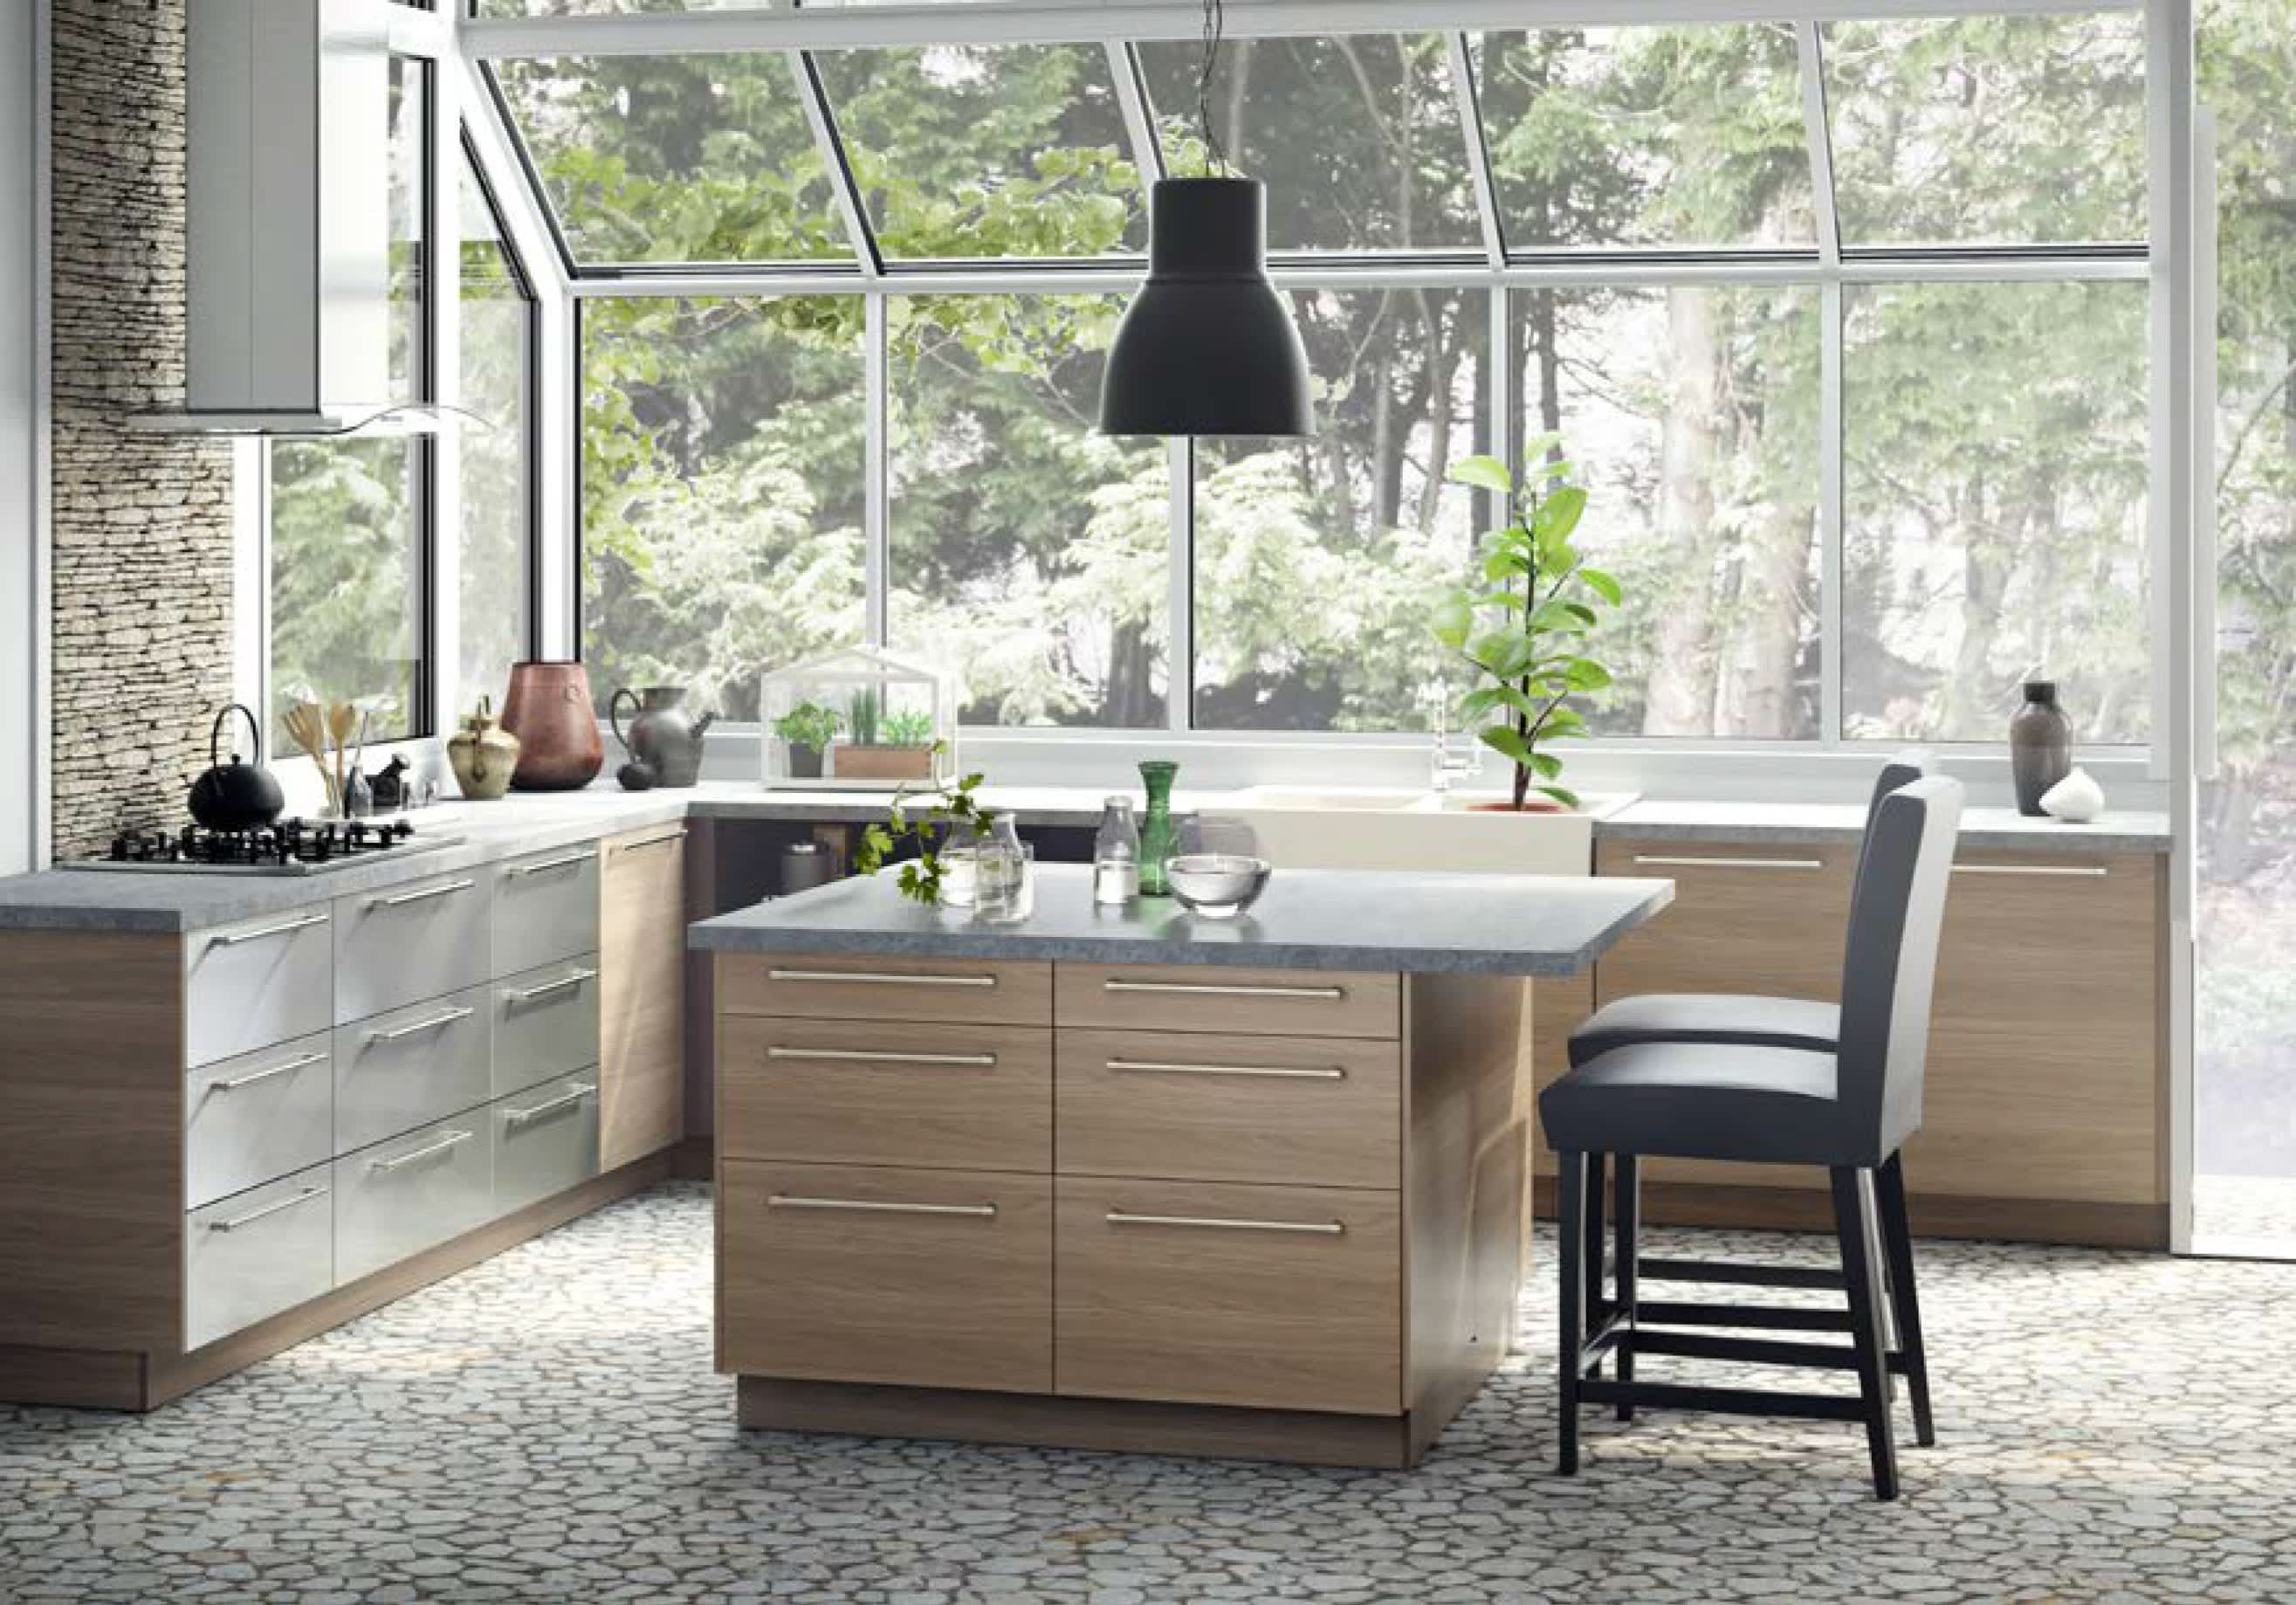 A Guide to IKEA's New SEKTION Kitchen Cabinets! We've Got Sizes, Prices, and Photos: gallery image 4